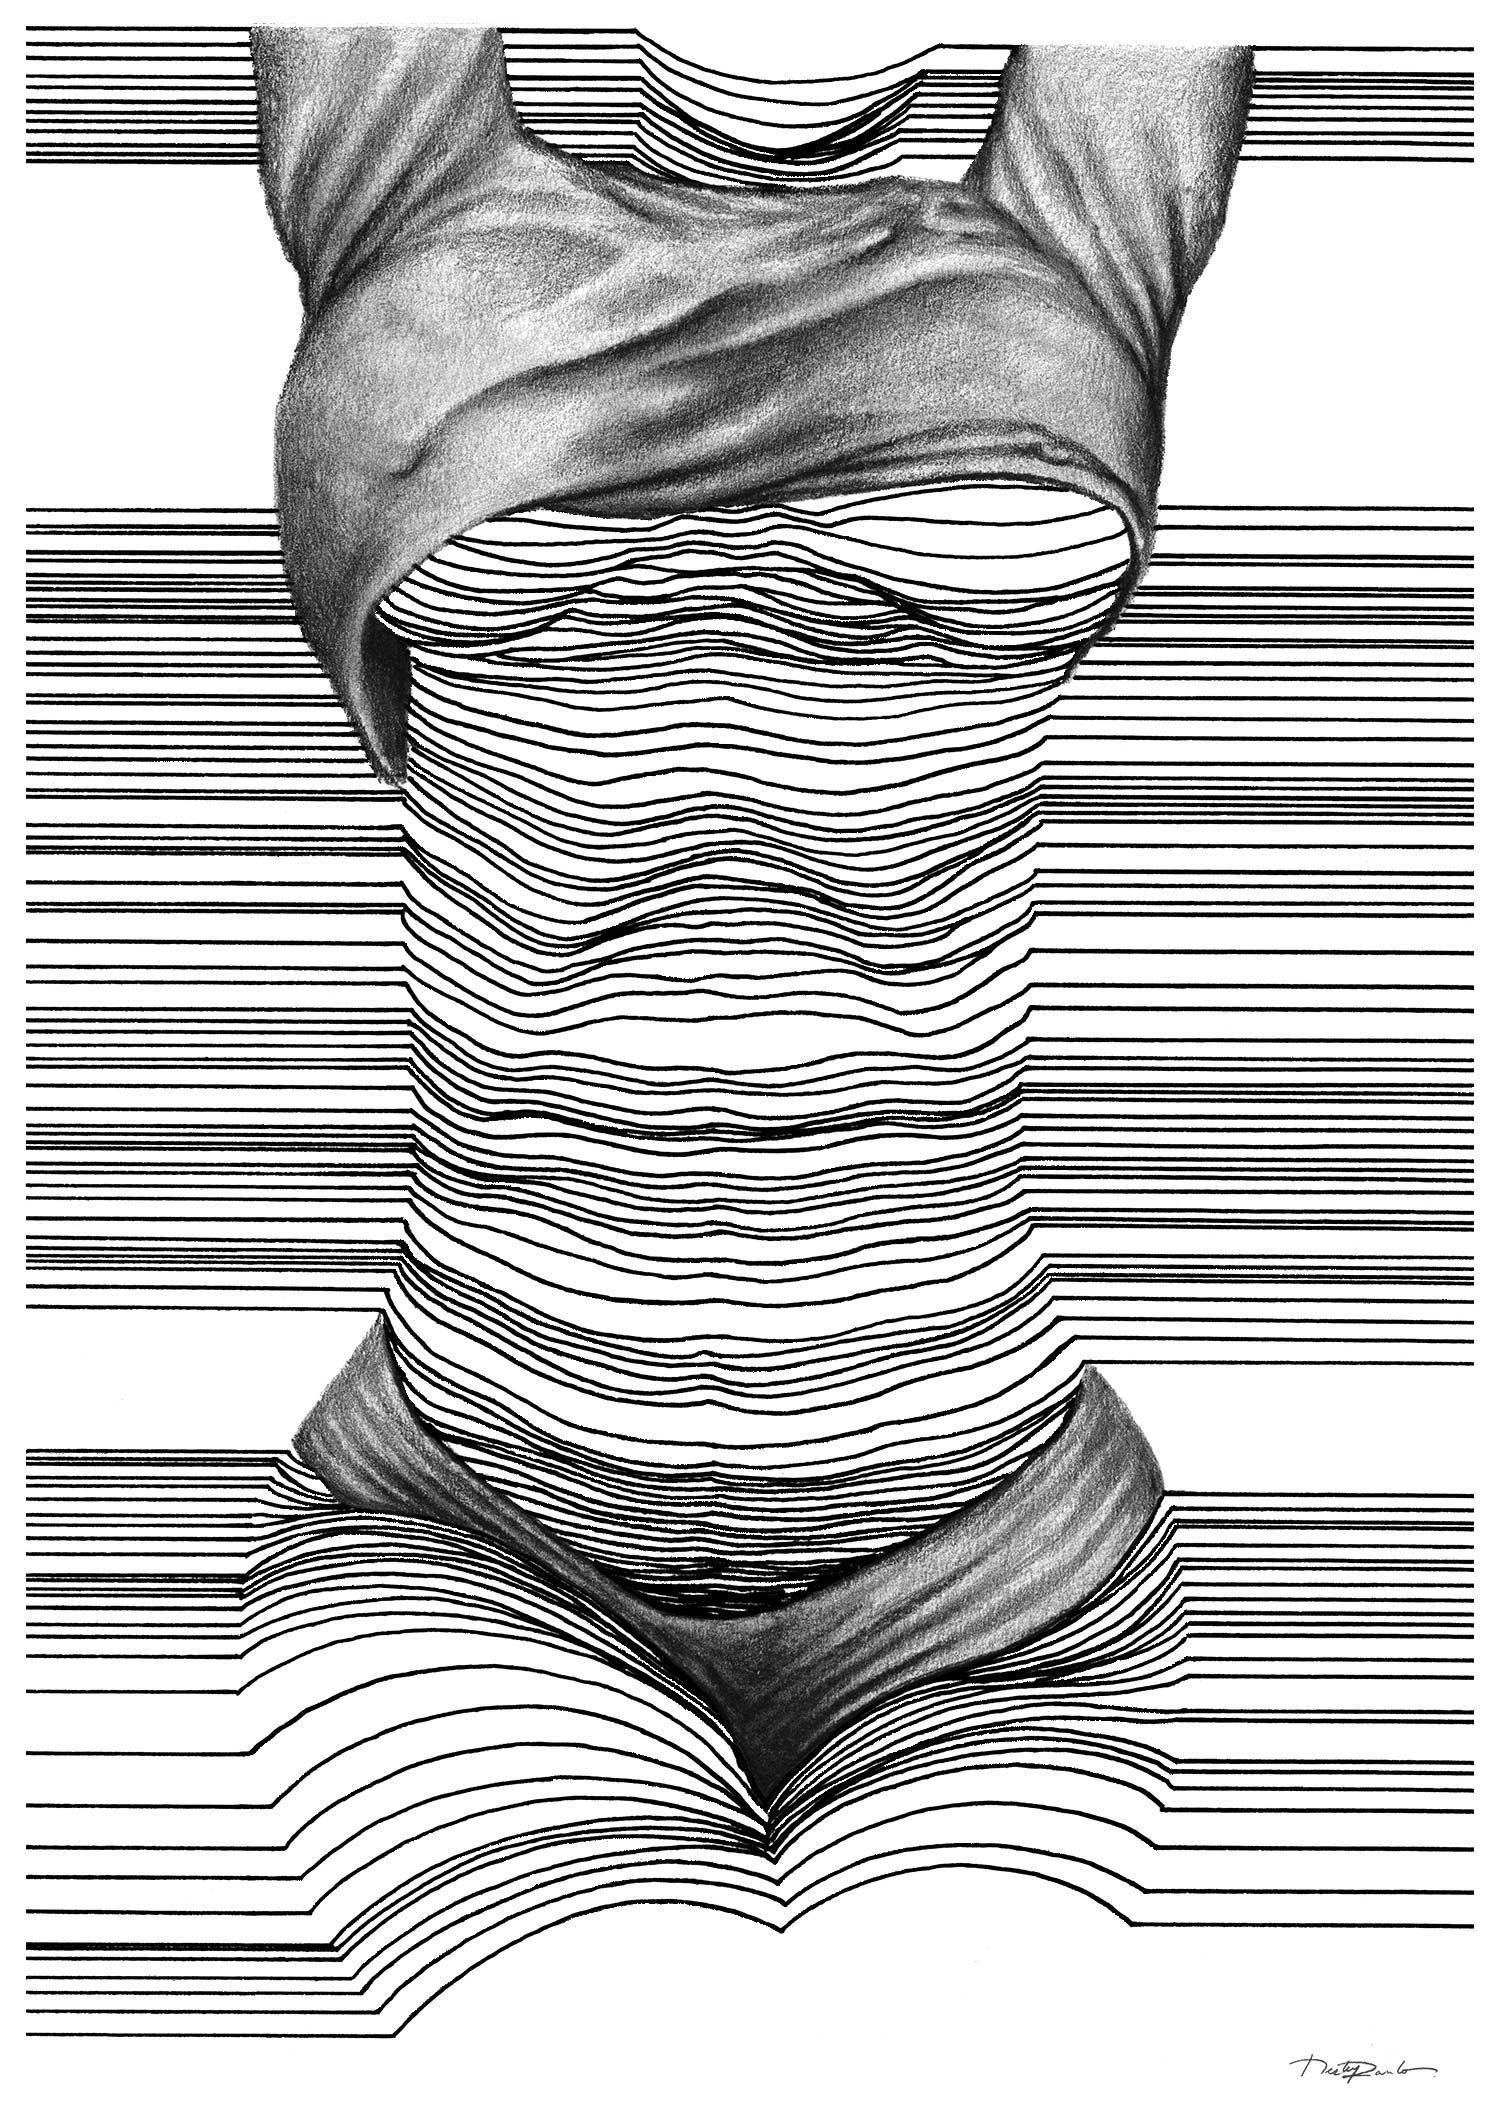 Drawing Lines In D : Sensual d line art by nester formentera drawings